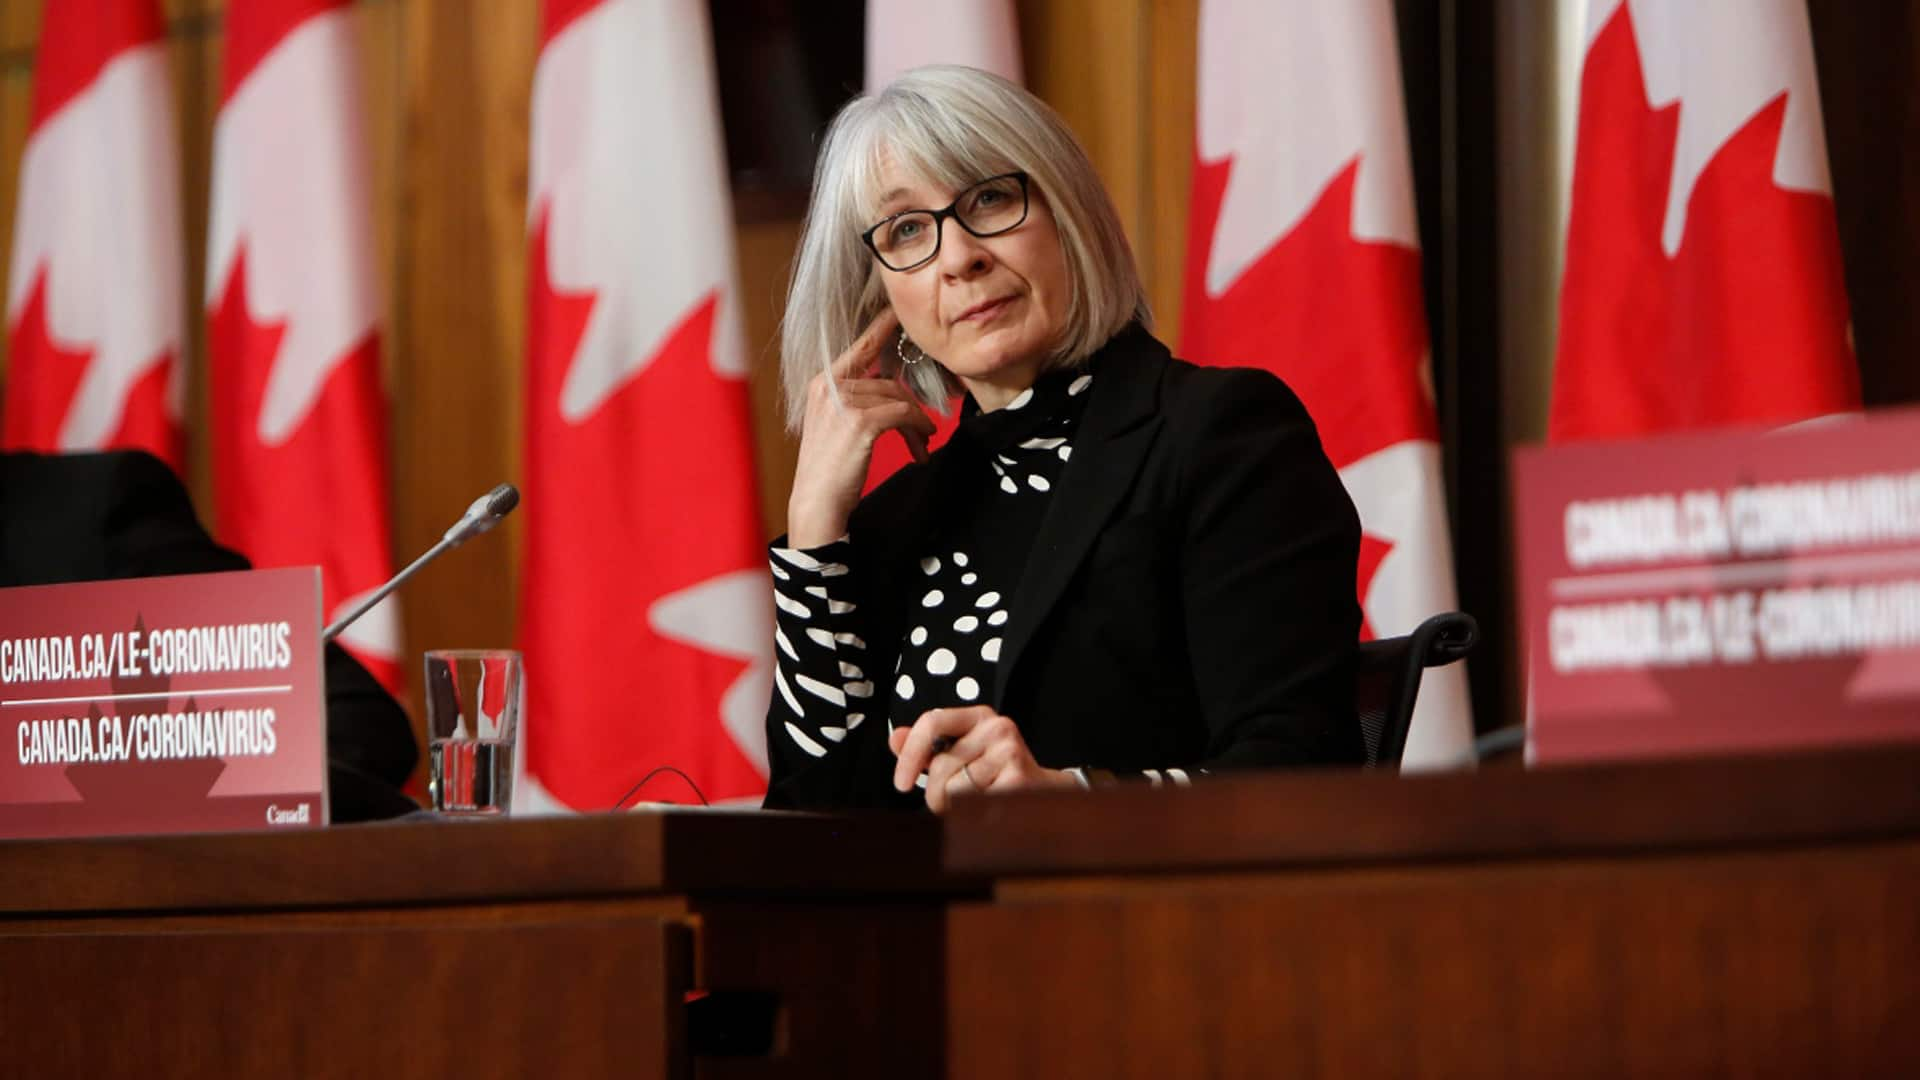 Health minister testifies at Commons Canada-China committee